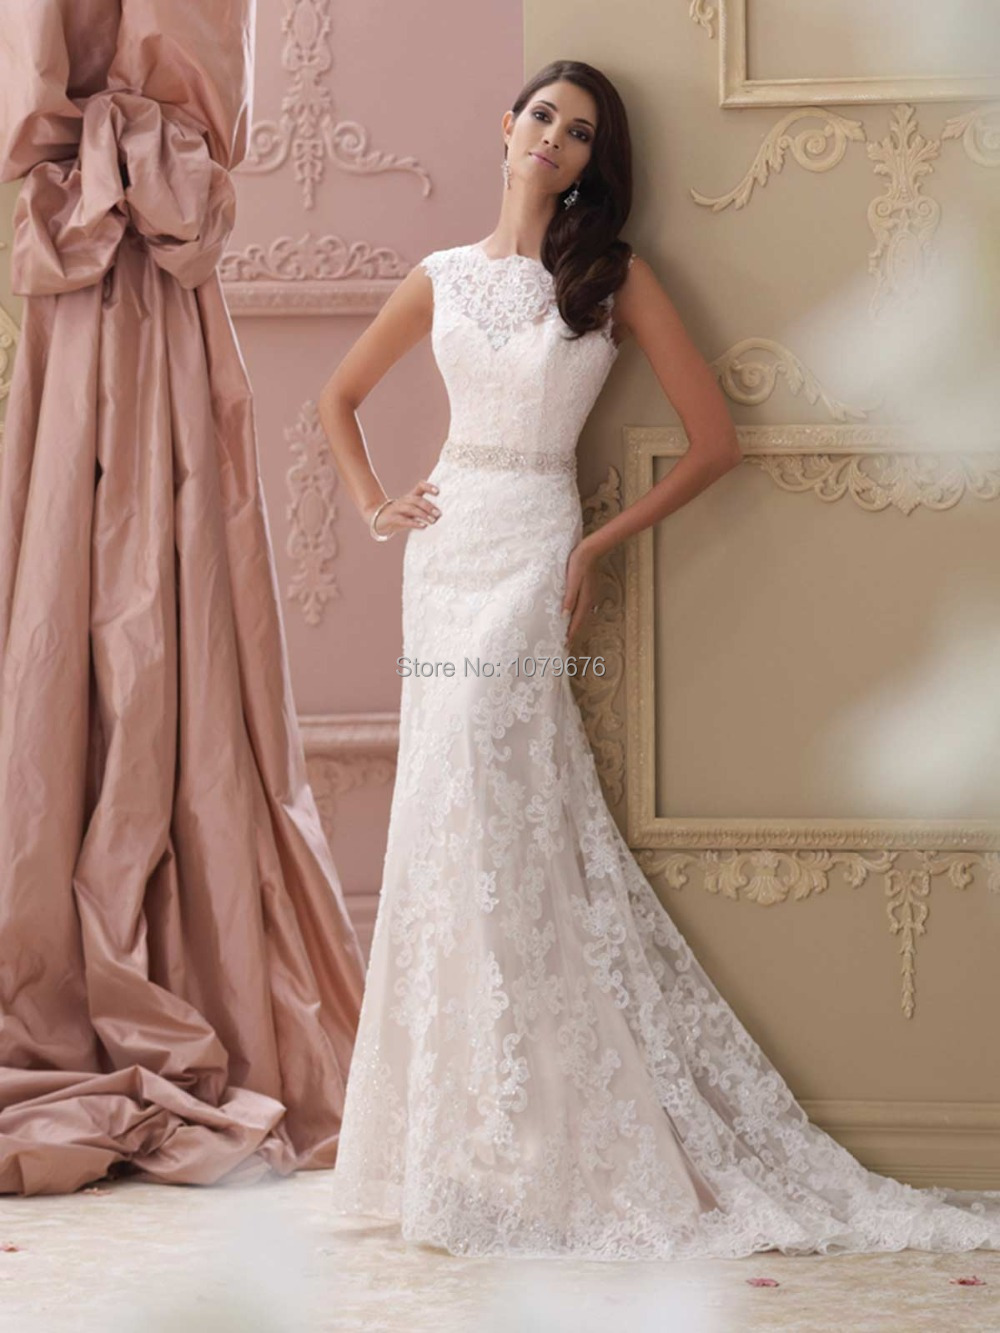 High quality elegant wedding dresses vintage lace beaded for Vintage backless wedding dresses